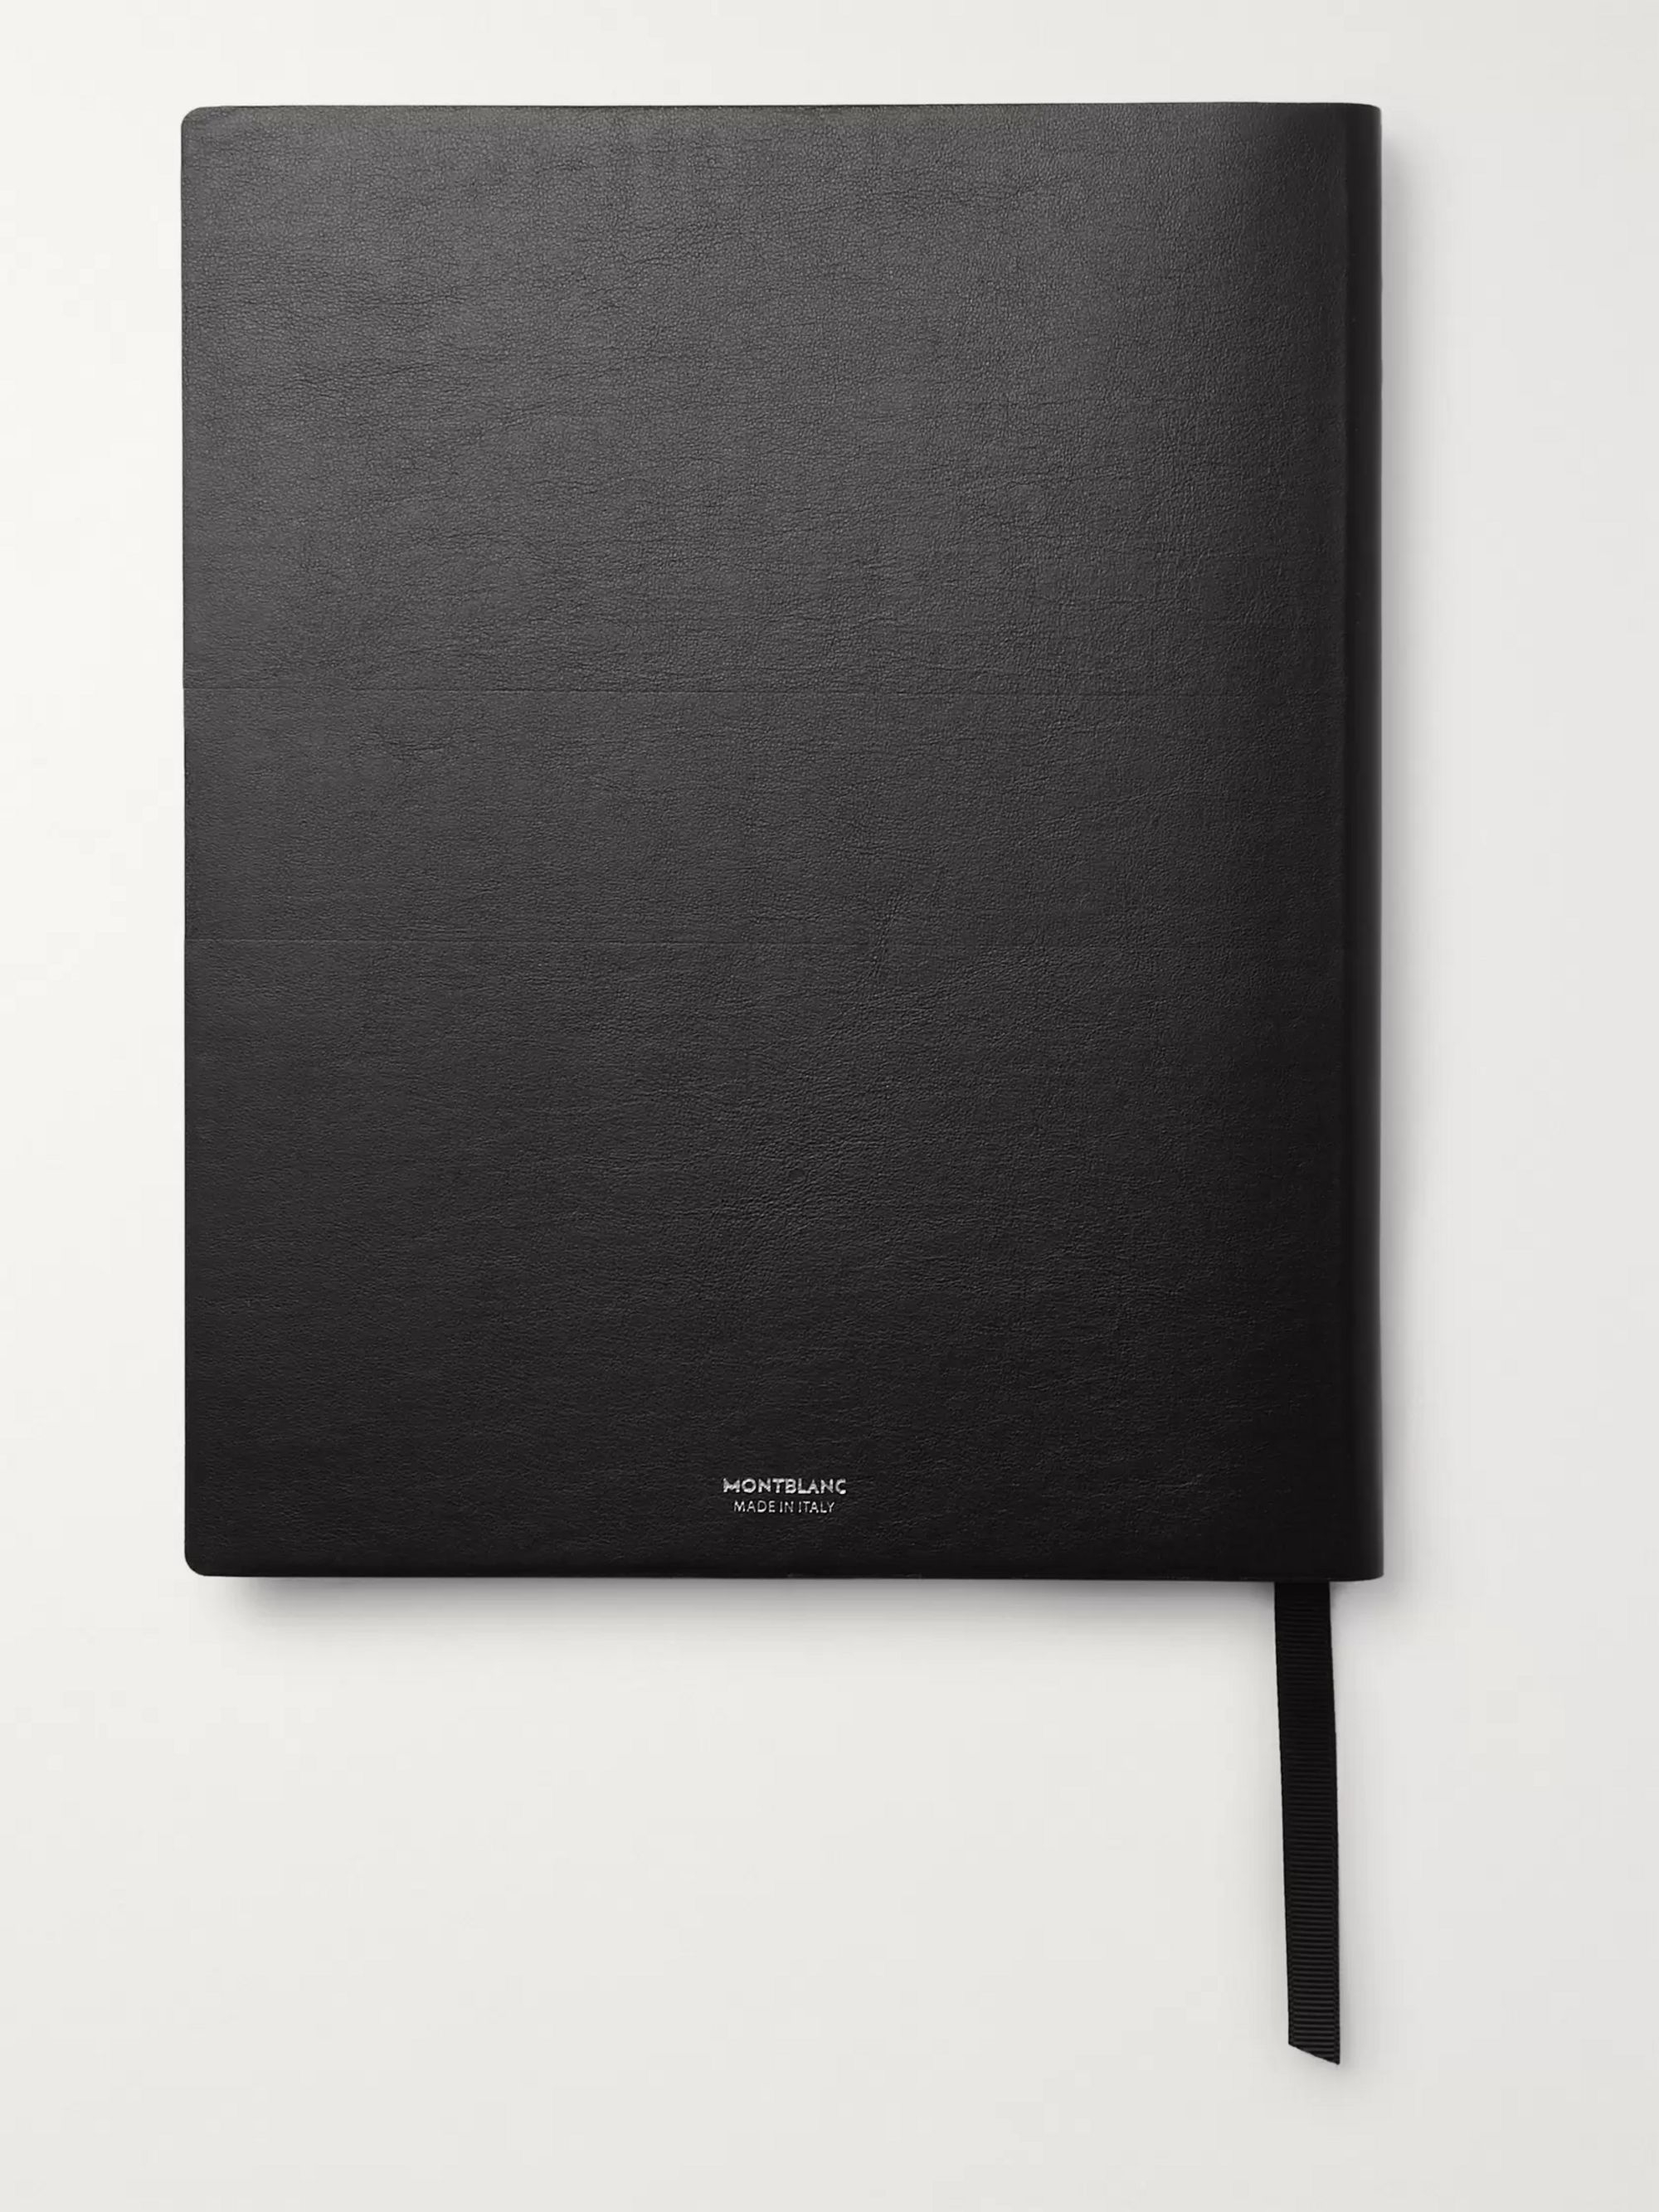 Montblanc #149 Metallic Leather Notebook